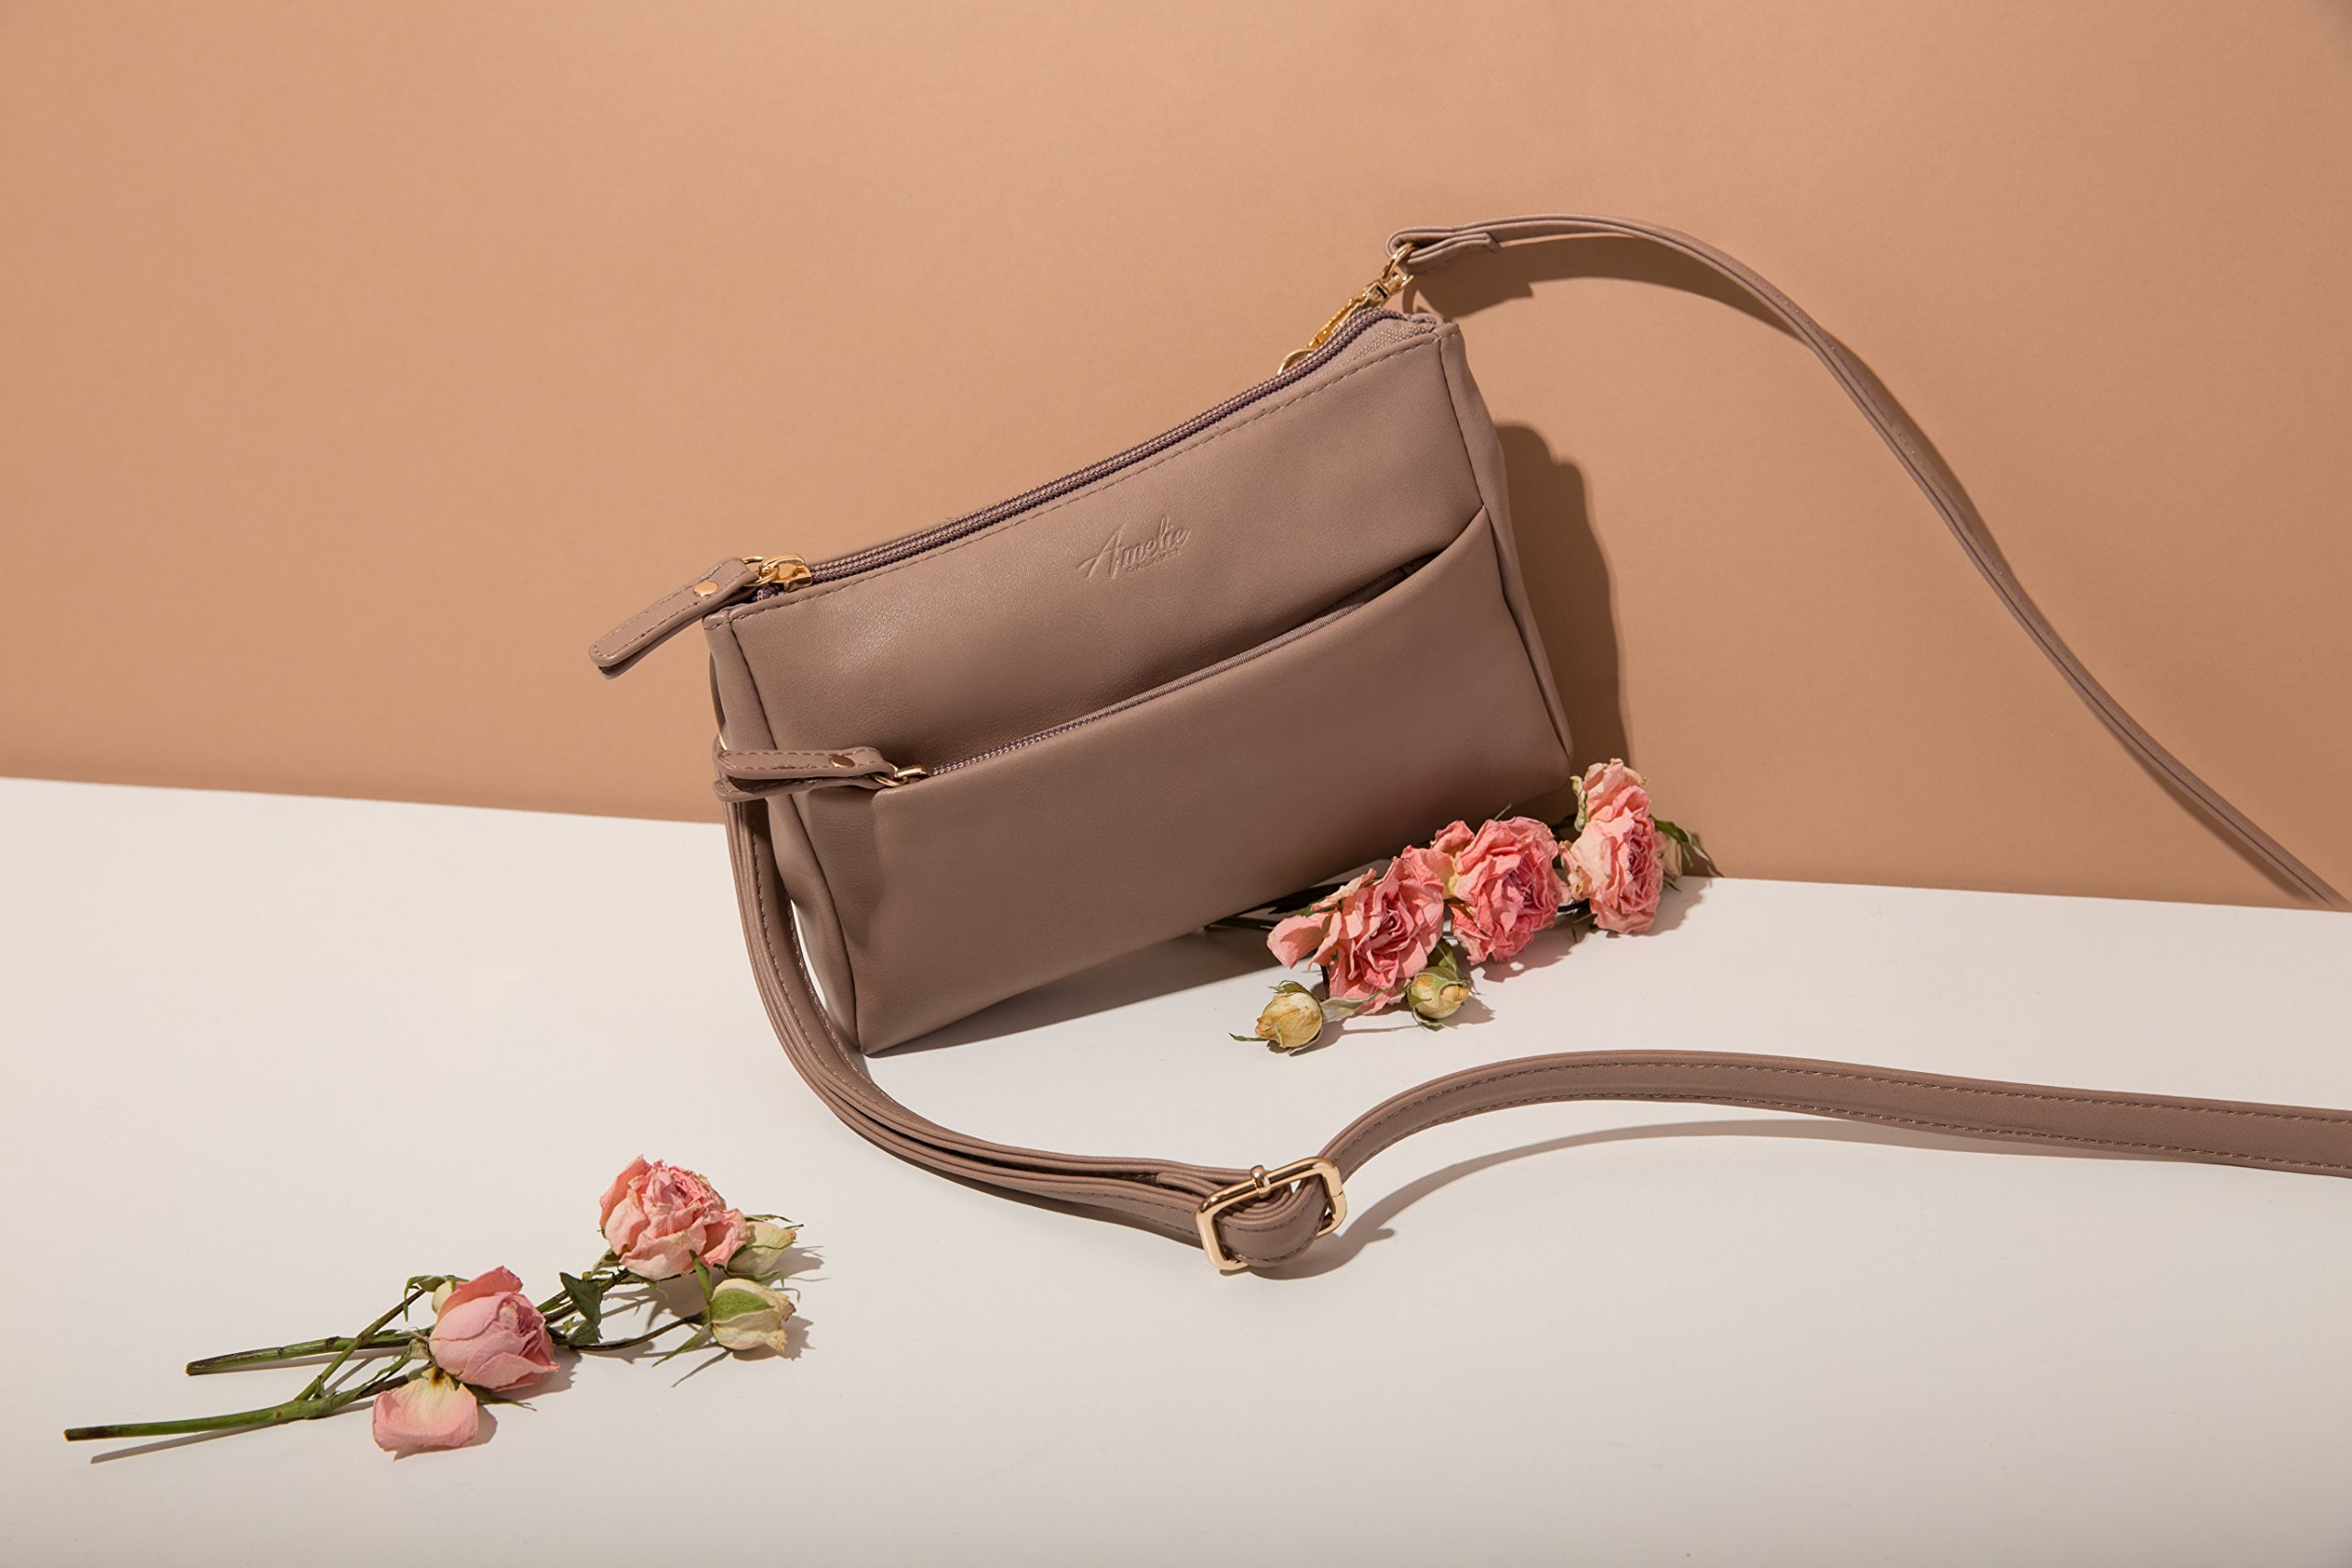 Double Zip Small Crossbody Bag Satchel for Women by AMELIE GALANTI (Image #5)